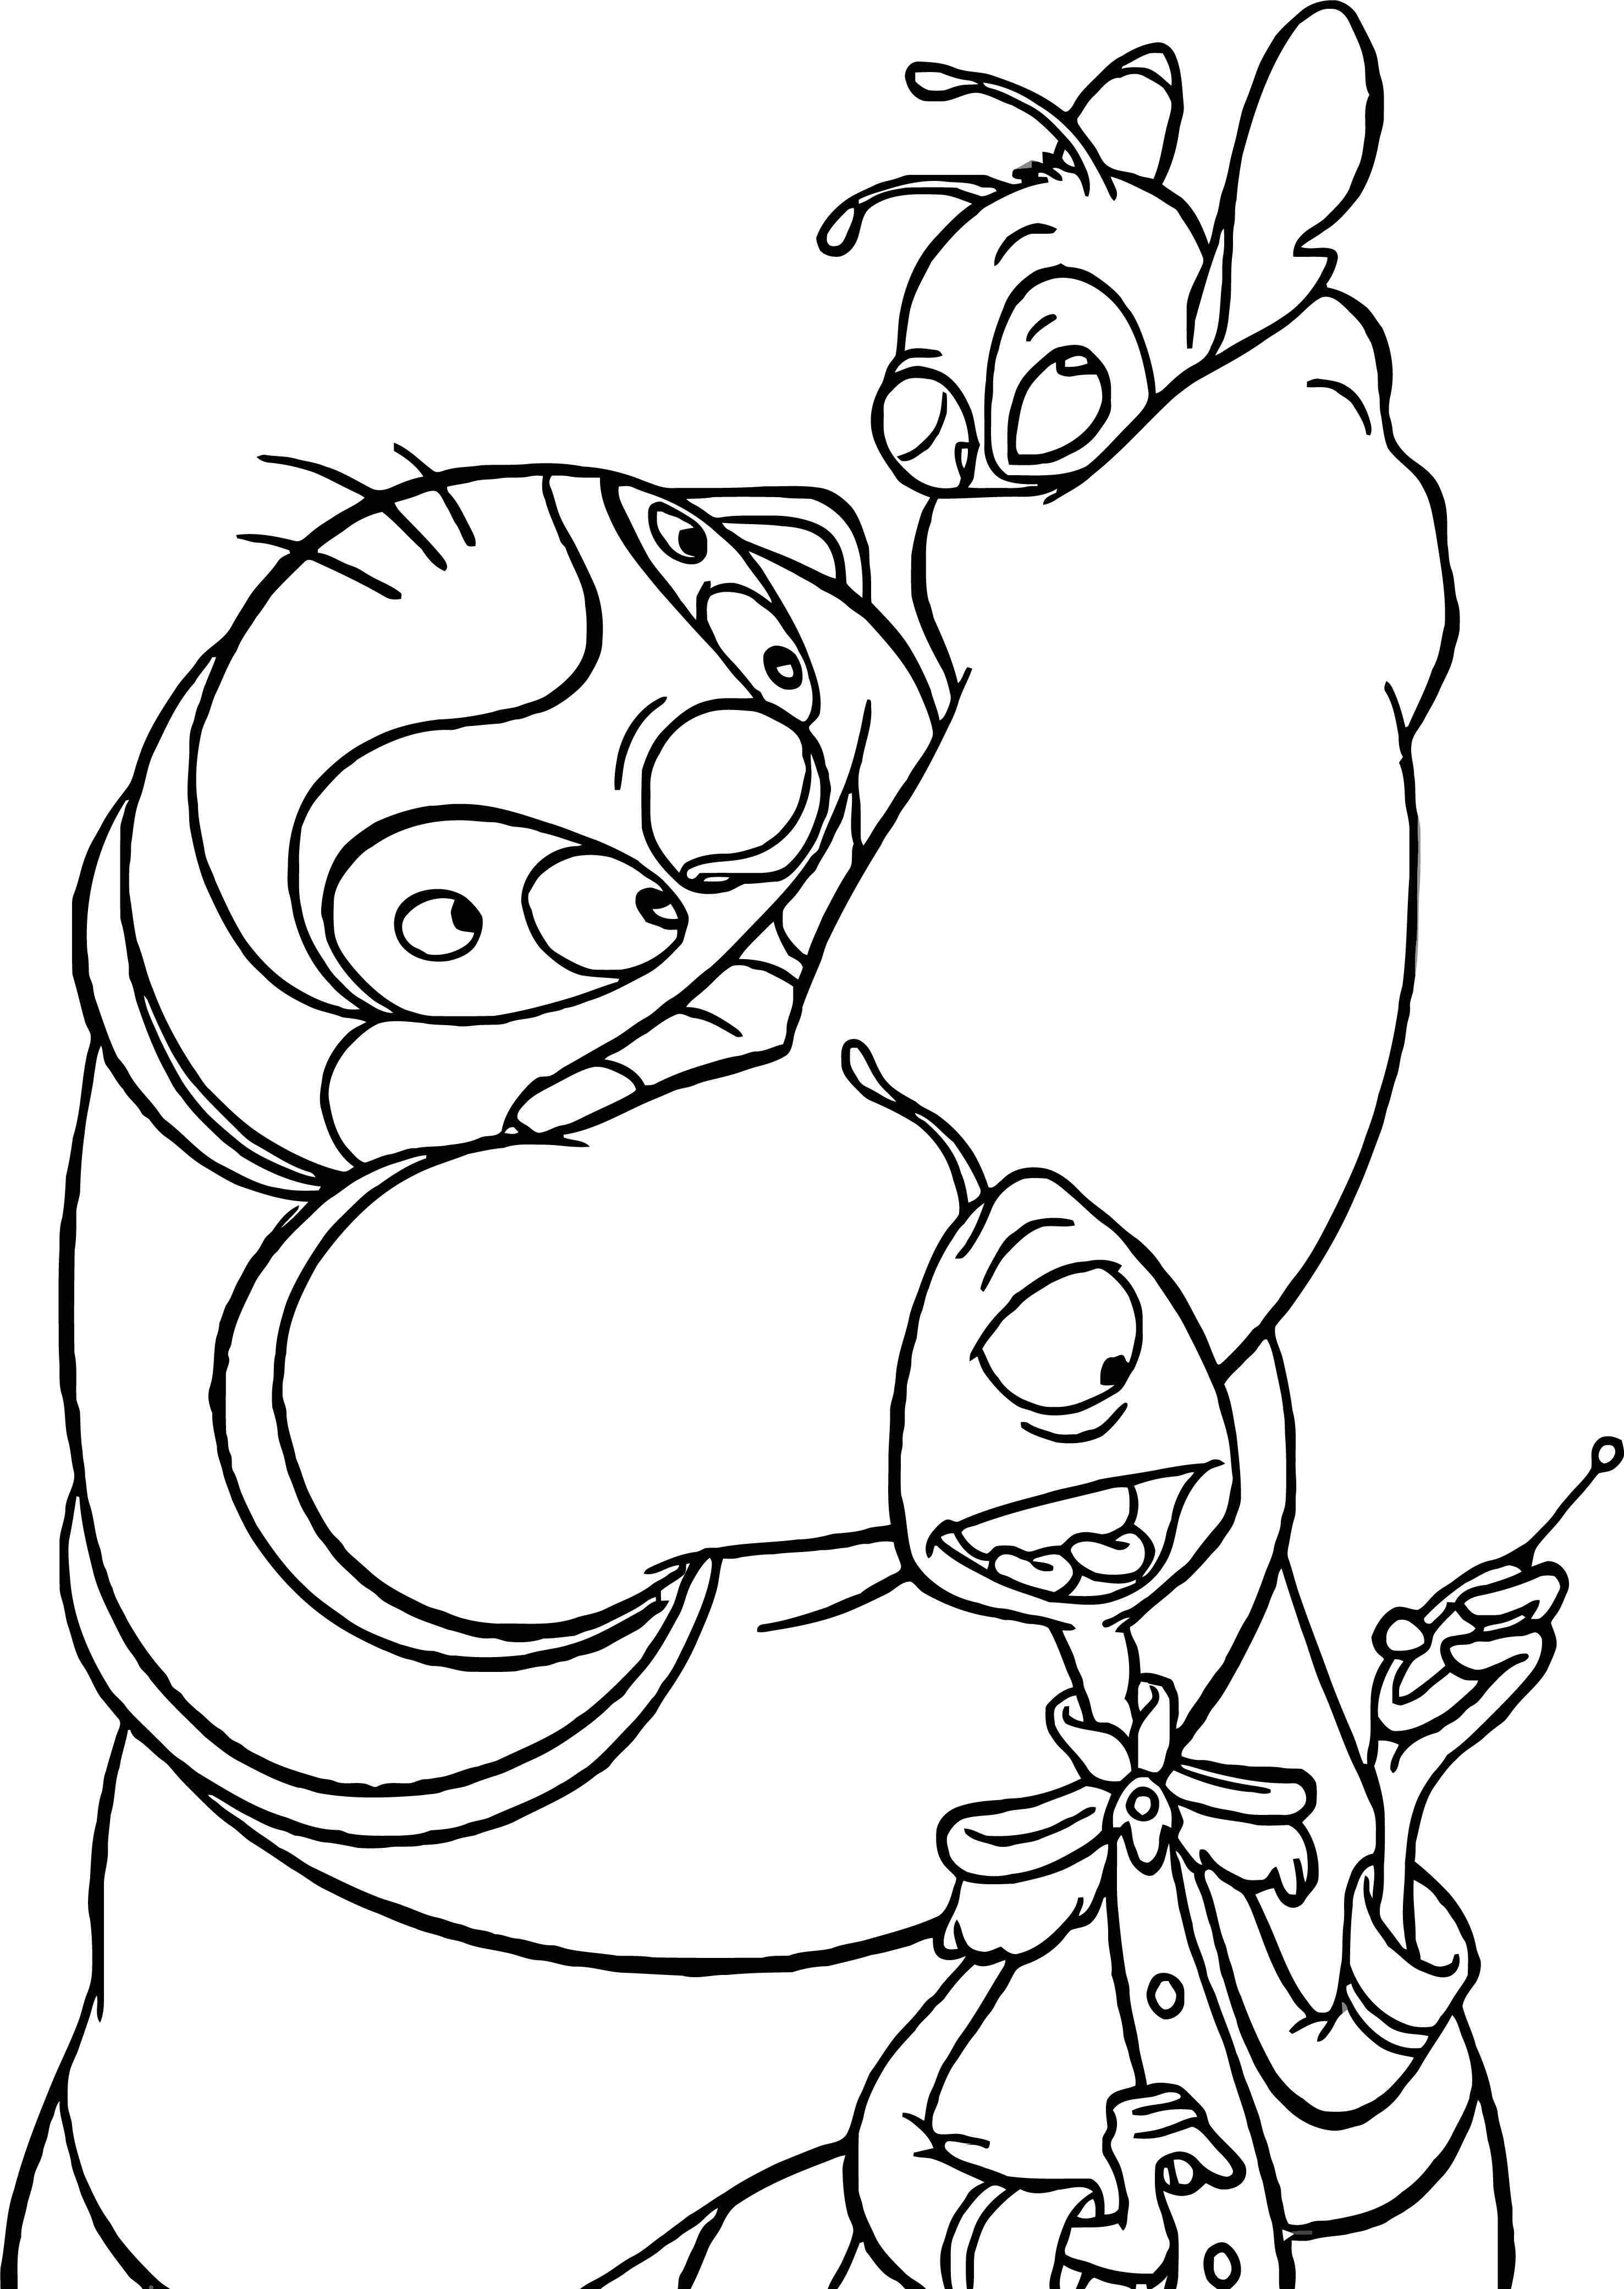 Lilo And Stitch Pleakley Jumbo Coloring Pages